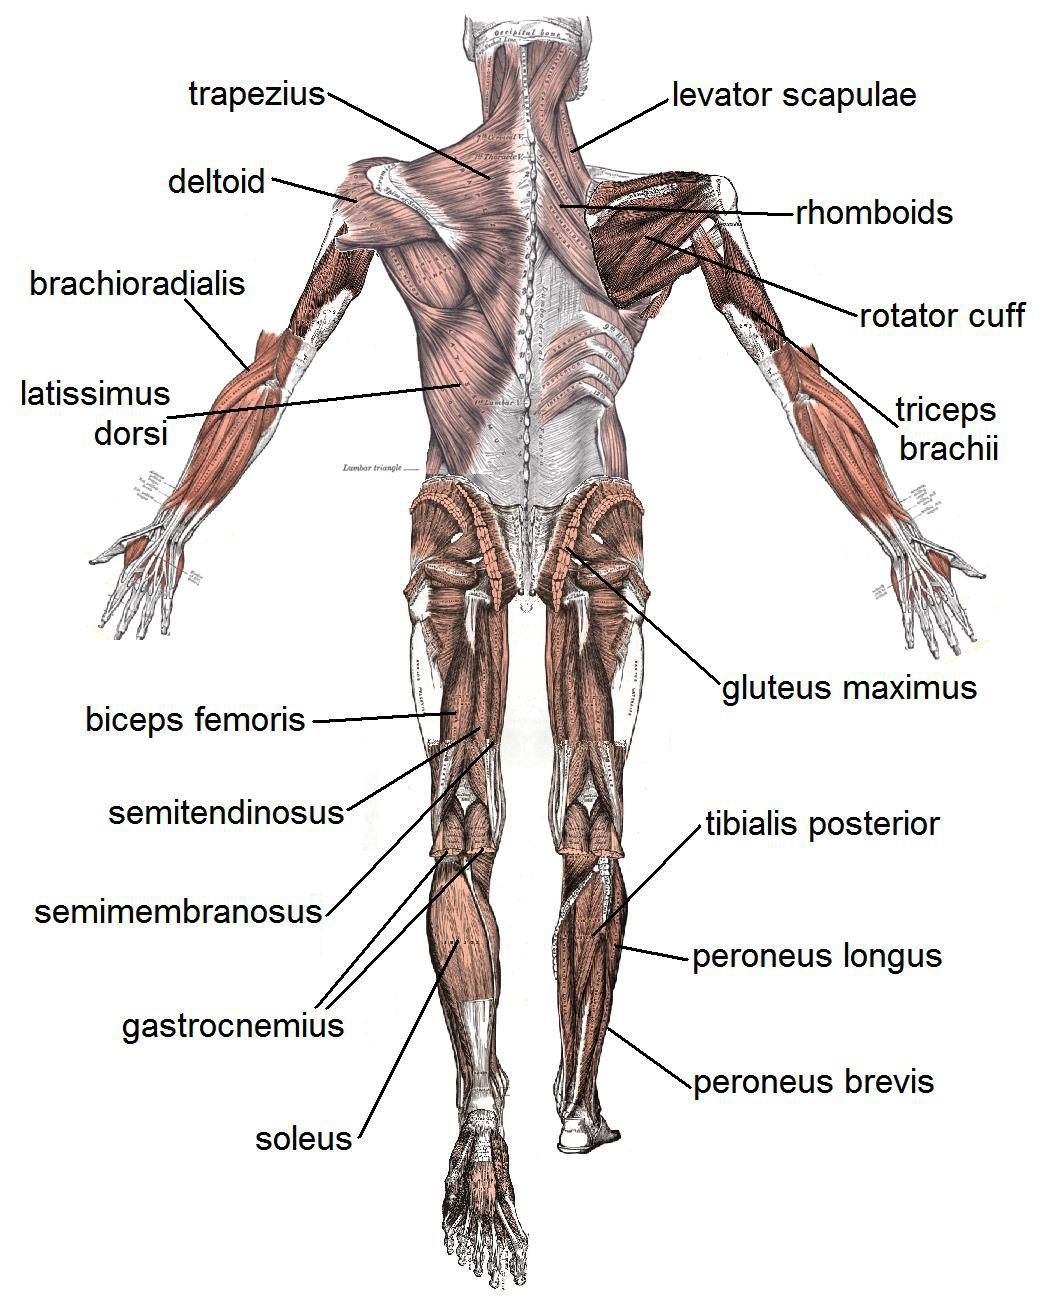 The Basic Muscles In The Human Body Human Muscular System